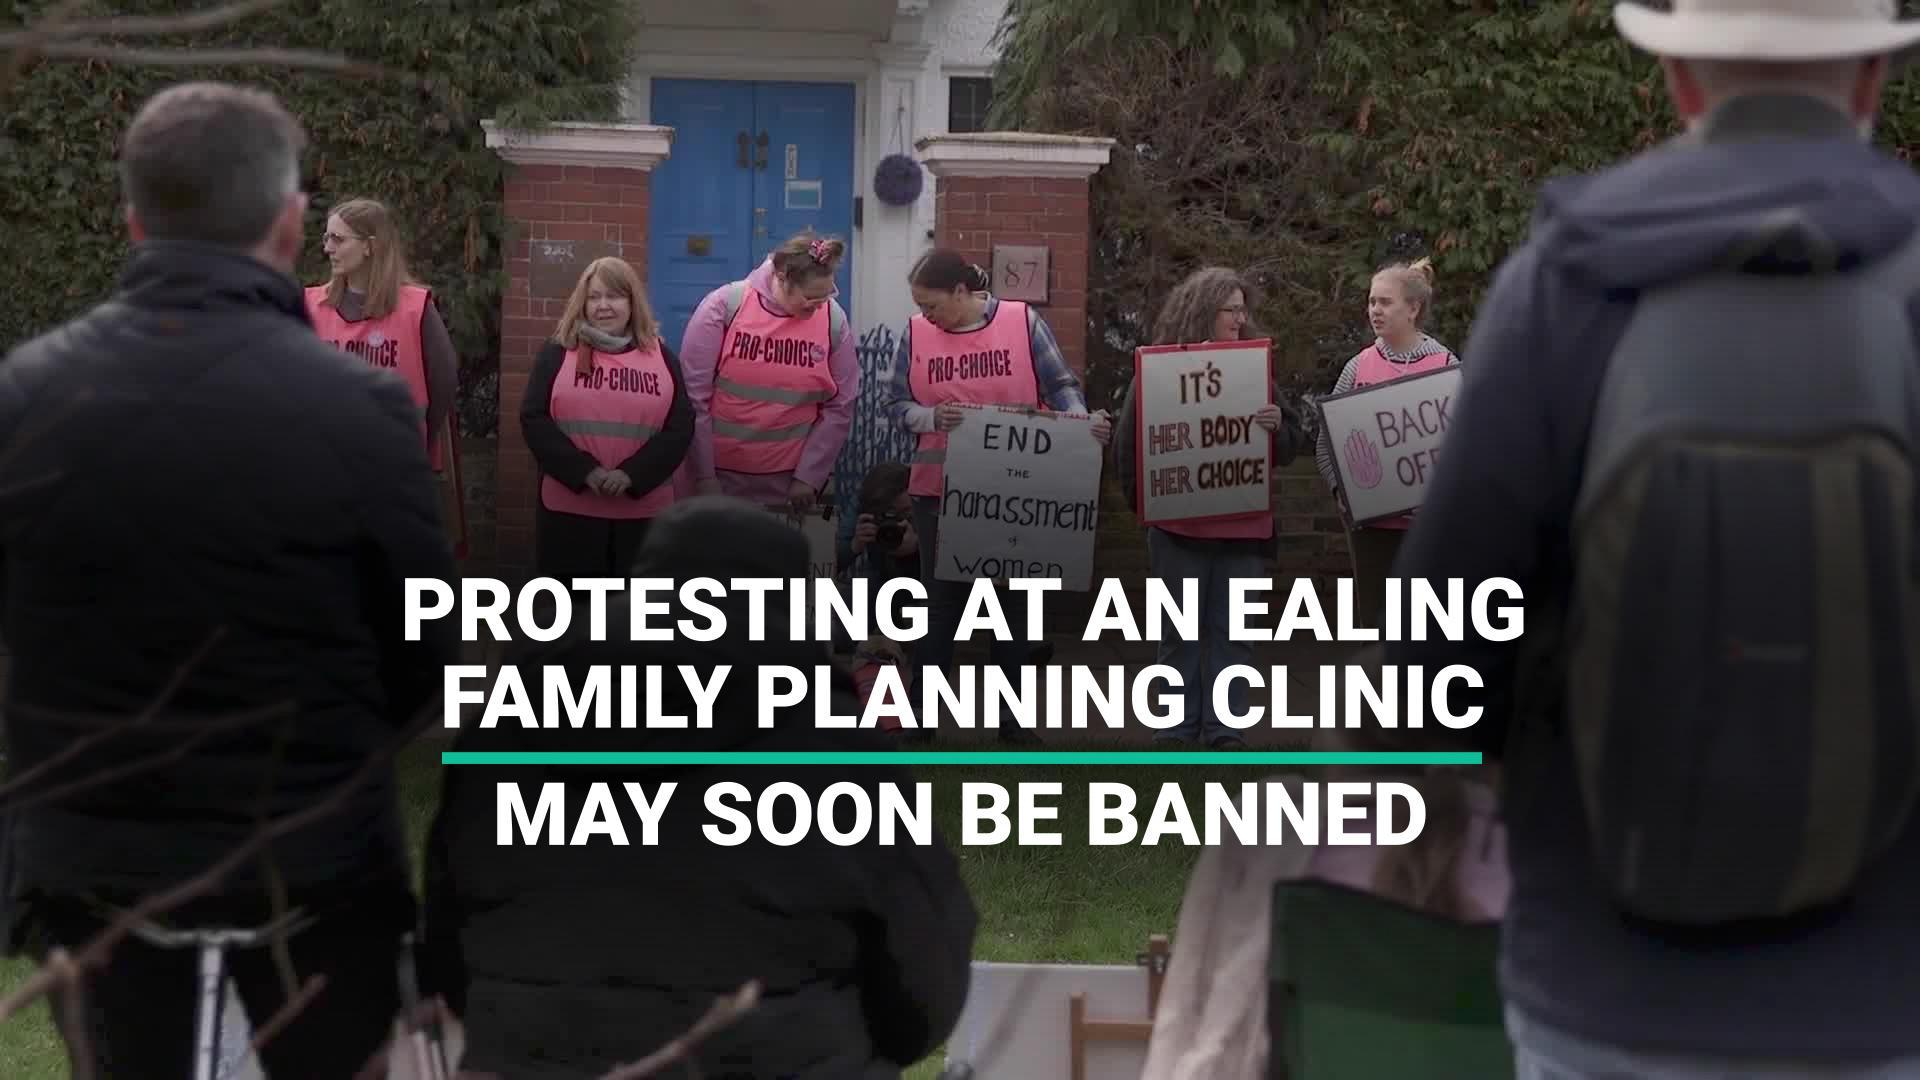 High Court Upholds Ban On Protests Outside Ealing Abortion Clinic